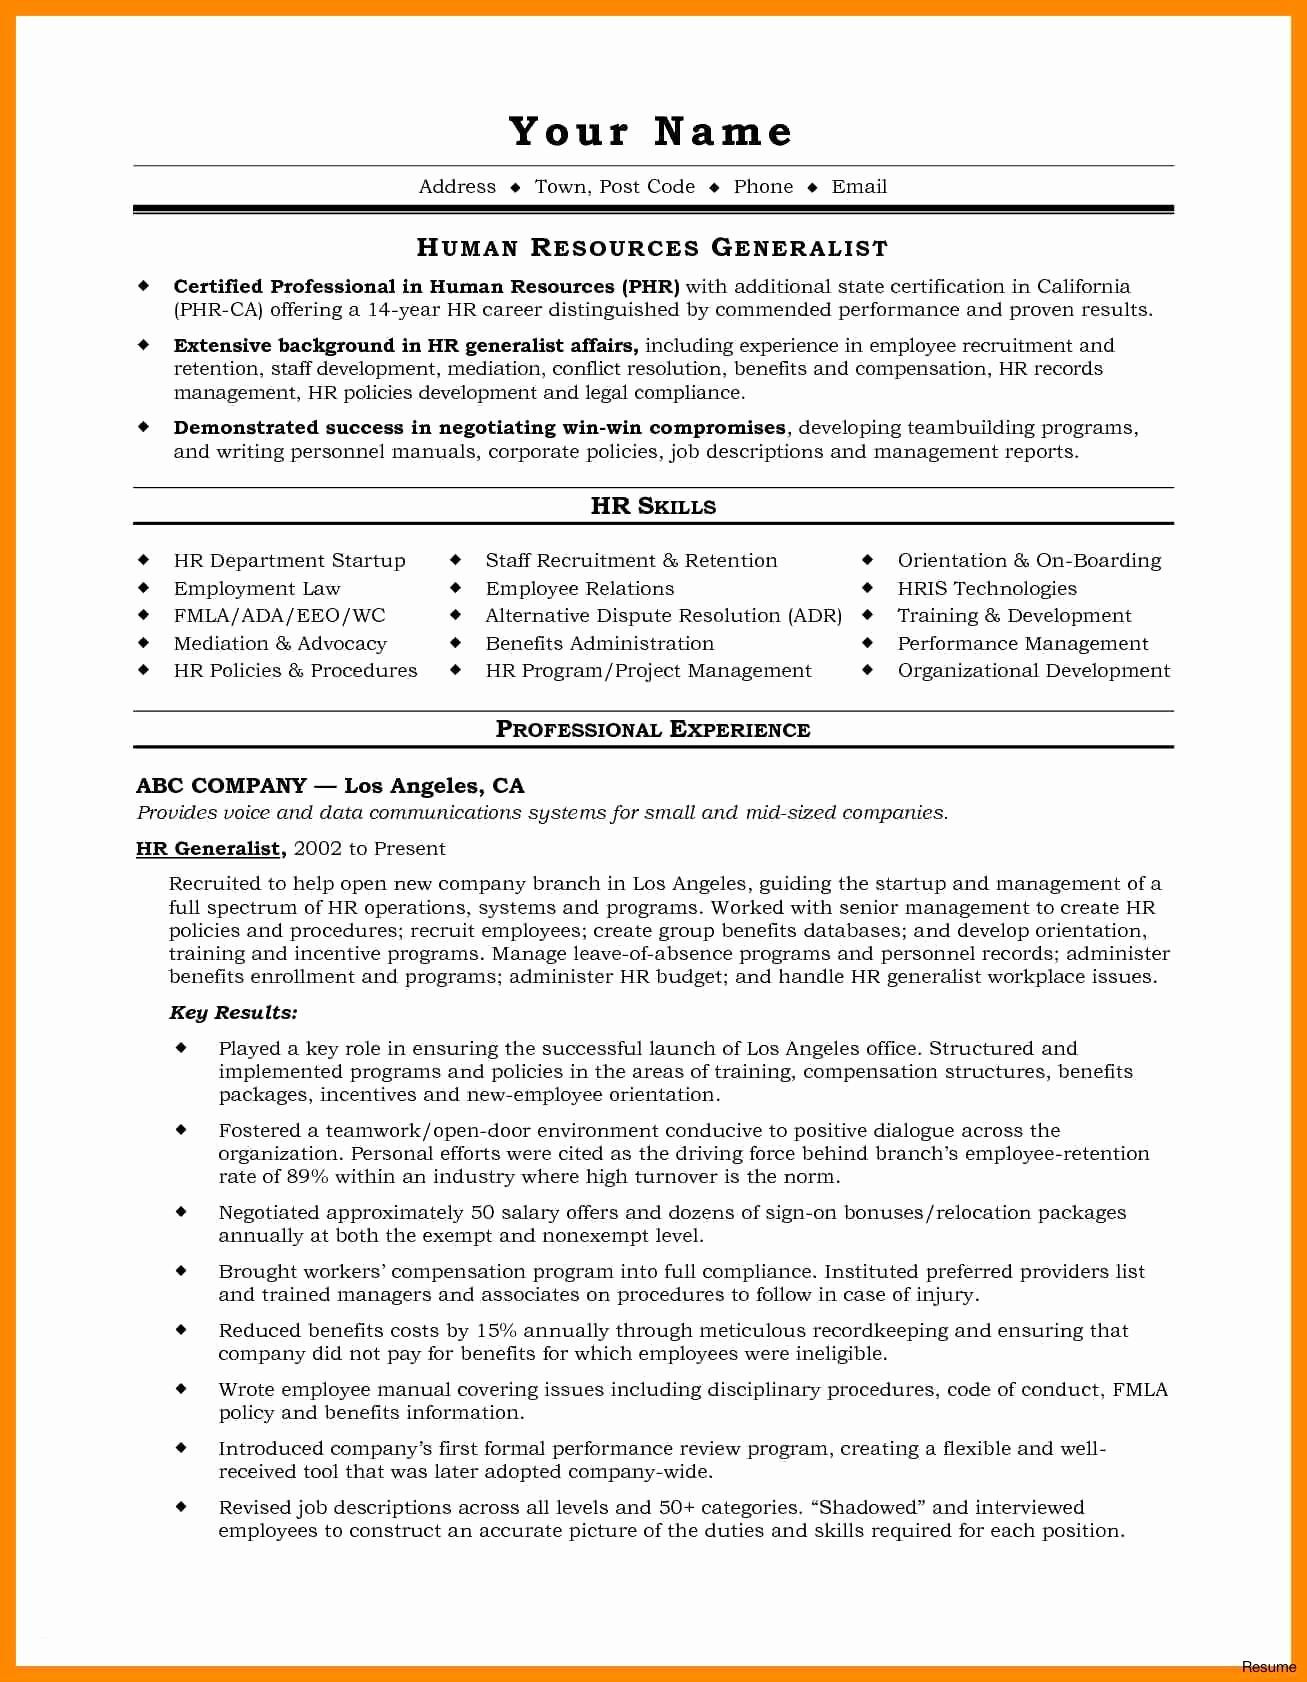 Upload Resume for Job - How to Find Resume Templa New Resume Experience Example Fresh Resume